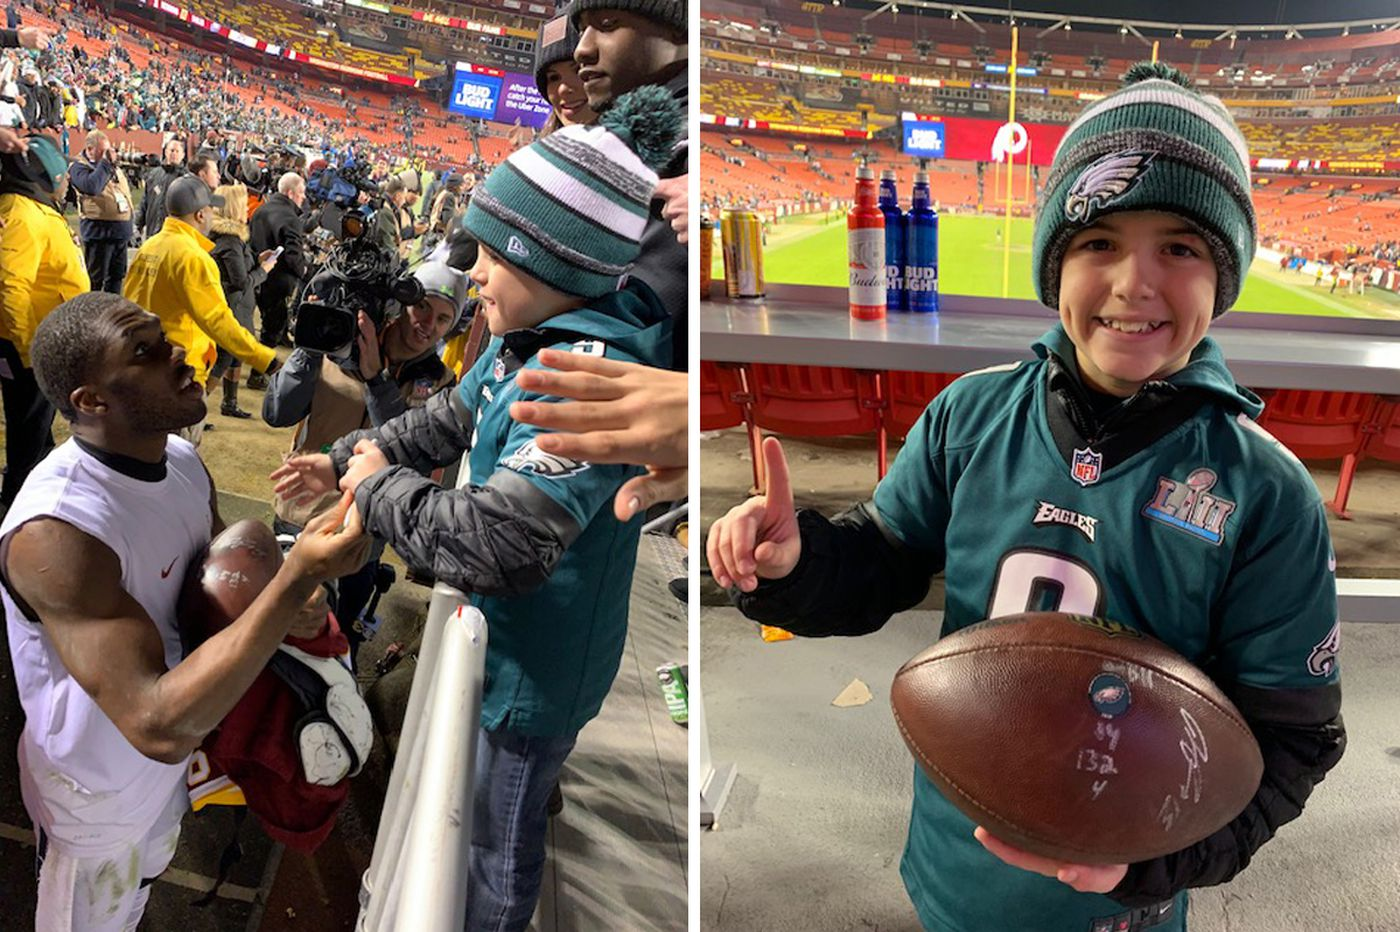 Young Eagles fan on giving Nate Sudfeld back his football: 'He's the player. He earned it more.'